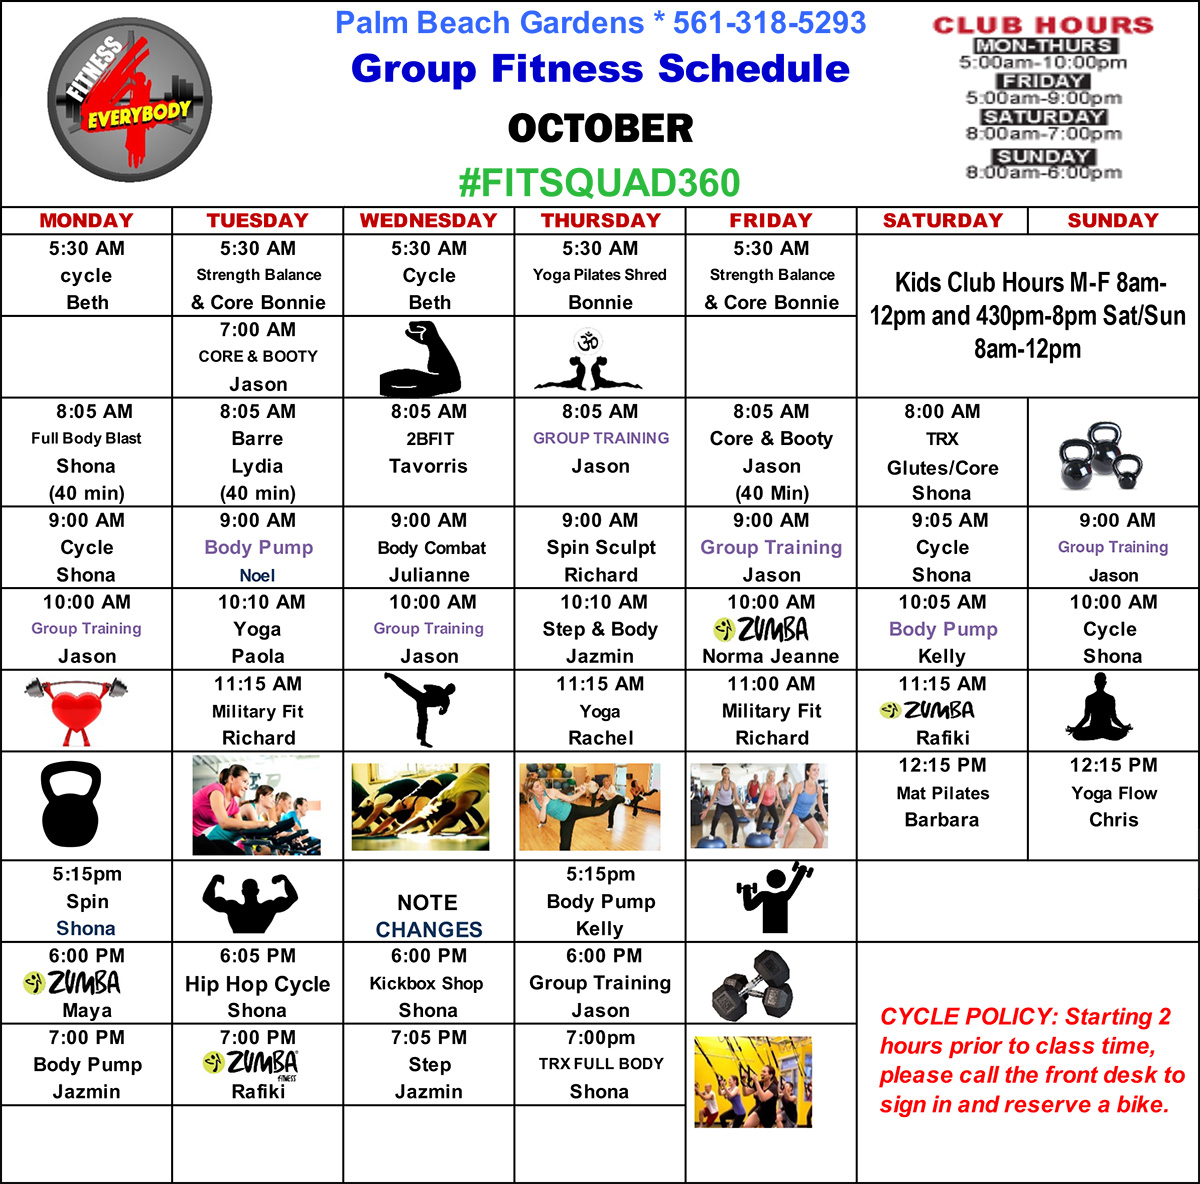 Group Fitness Class Schedule for October 2019